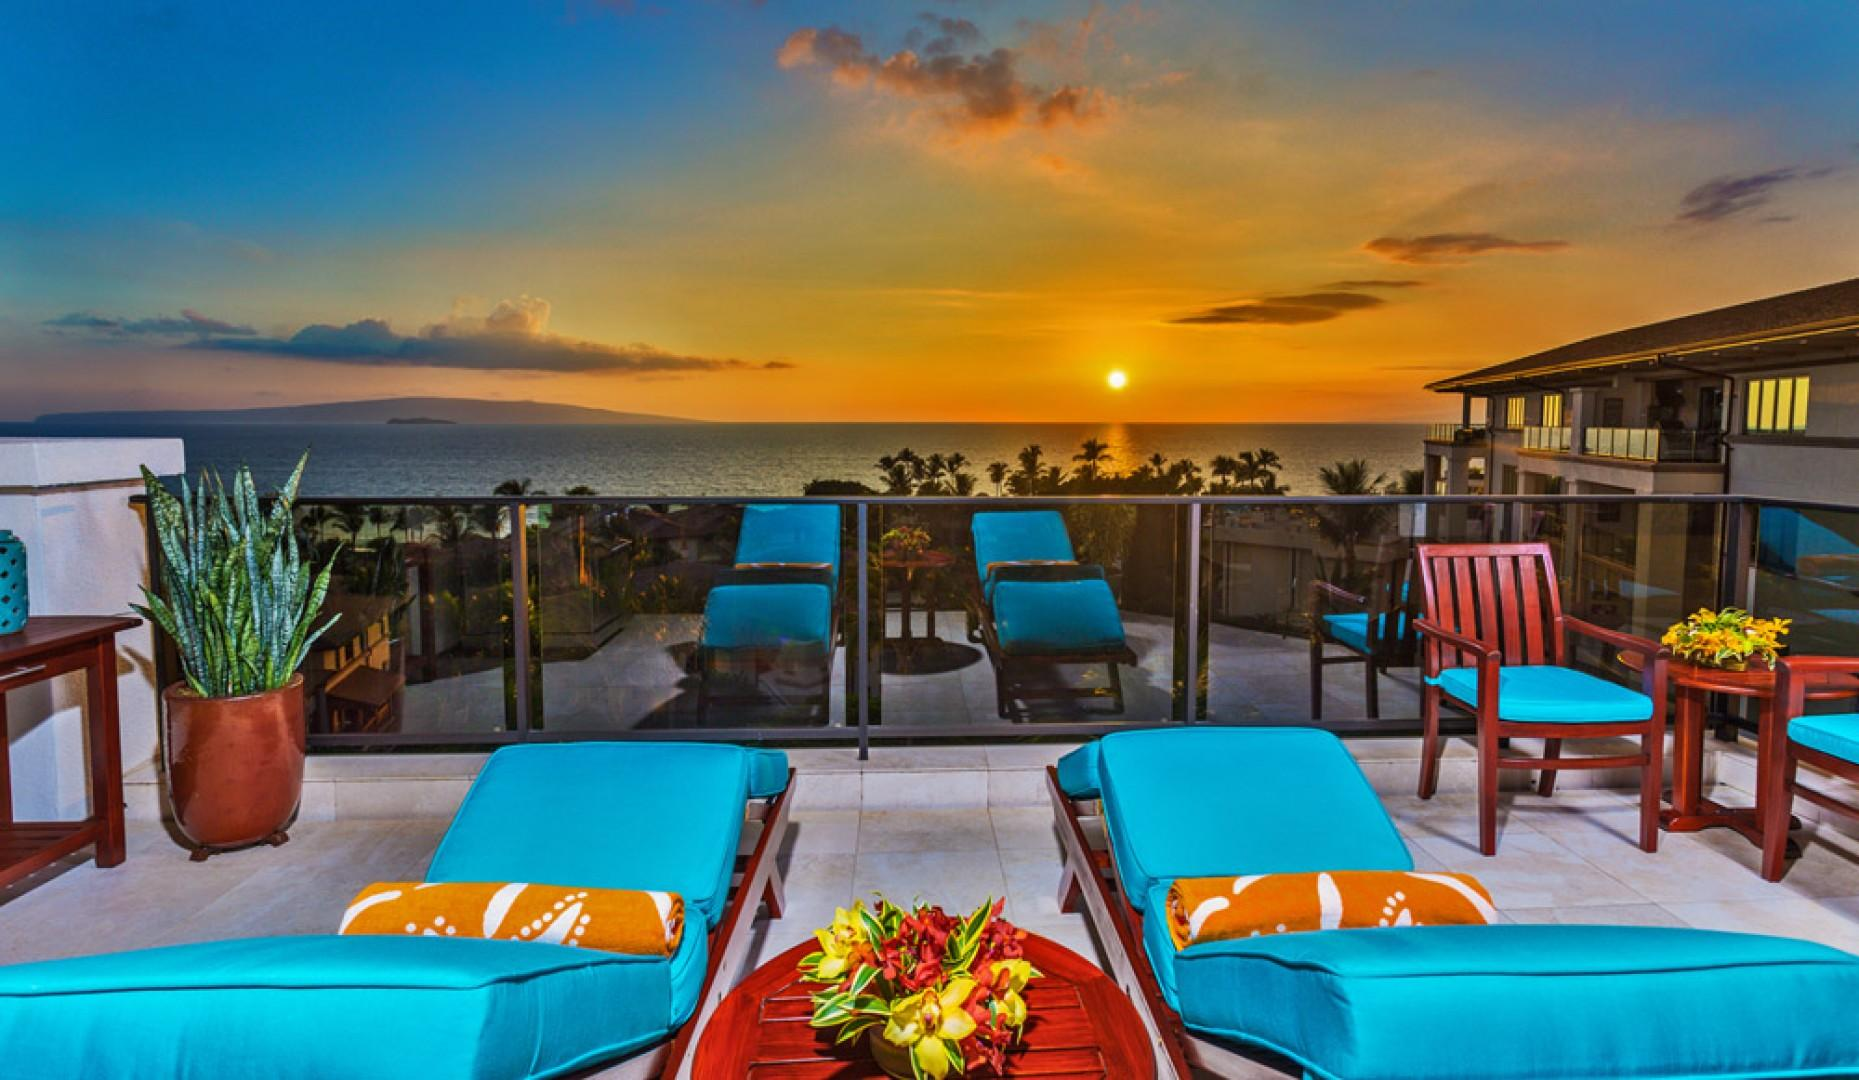 Stunning Sunset Views From K507 Wailea Seashore Suite Located on the TOP (5th Floor) of Wailea Beach Villas. The view is bigger and closer than we can show you via these photos. It's exceptionally impressive.